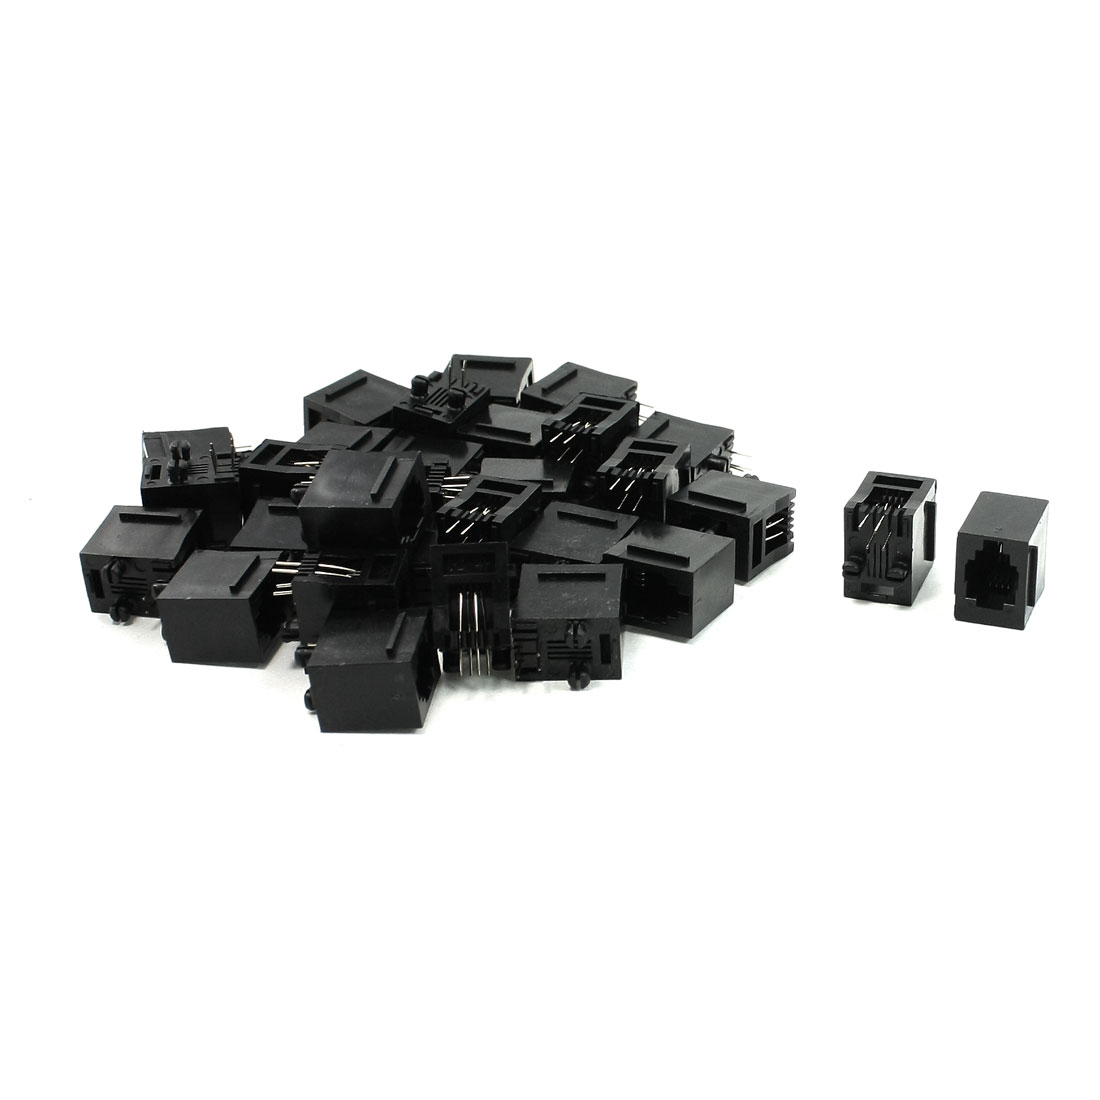 30Pcs RJ9 RJ10 RJ22 4P4C Handset Cord Sockets Vert PCB Jacks 15mm Length